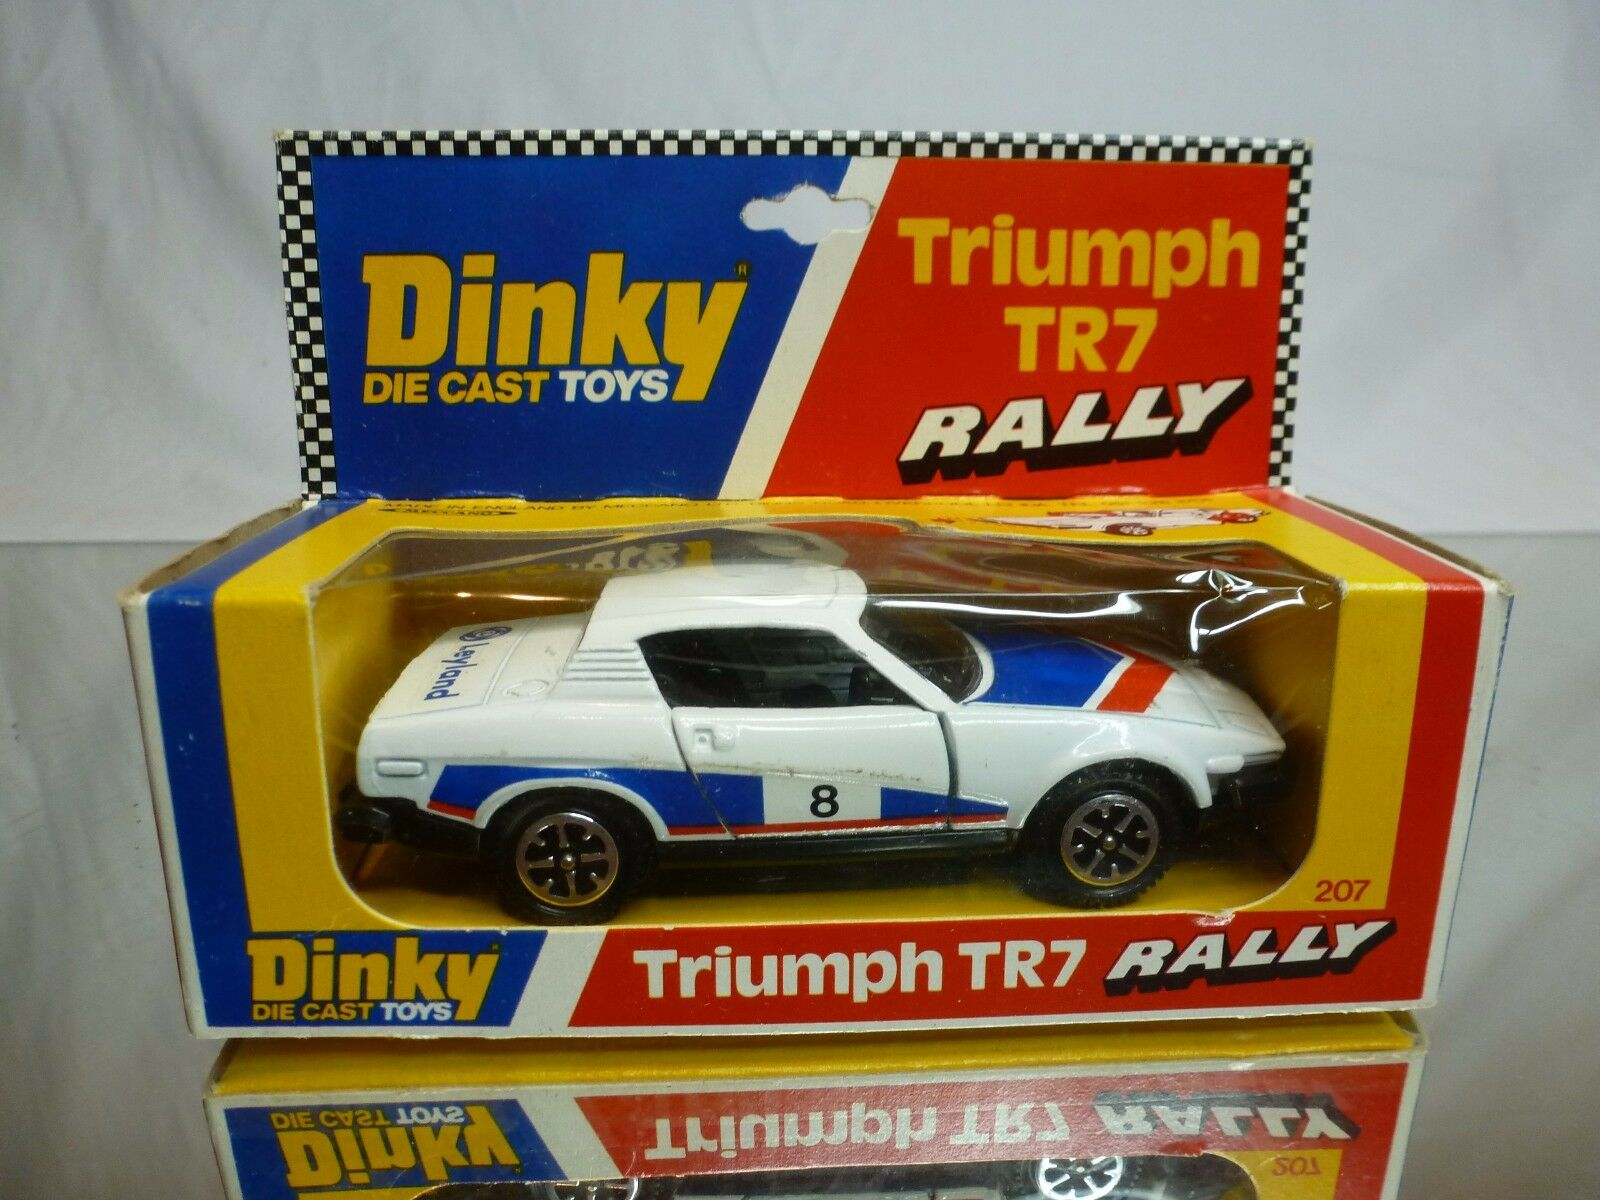 DINKY TOYS 207 TRIUMPH TR7 RALLY LEYLAND - Weiß 1 43 - GOOD CONDITION IN BOX